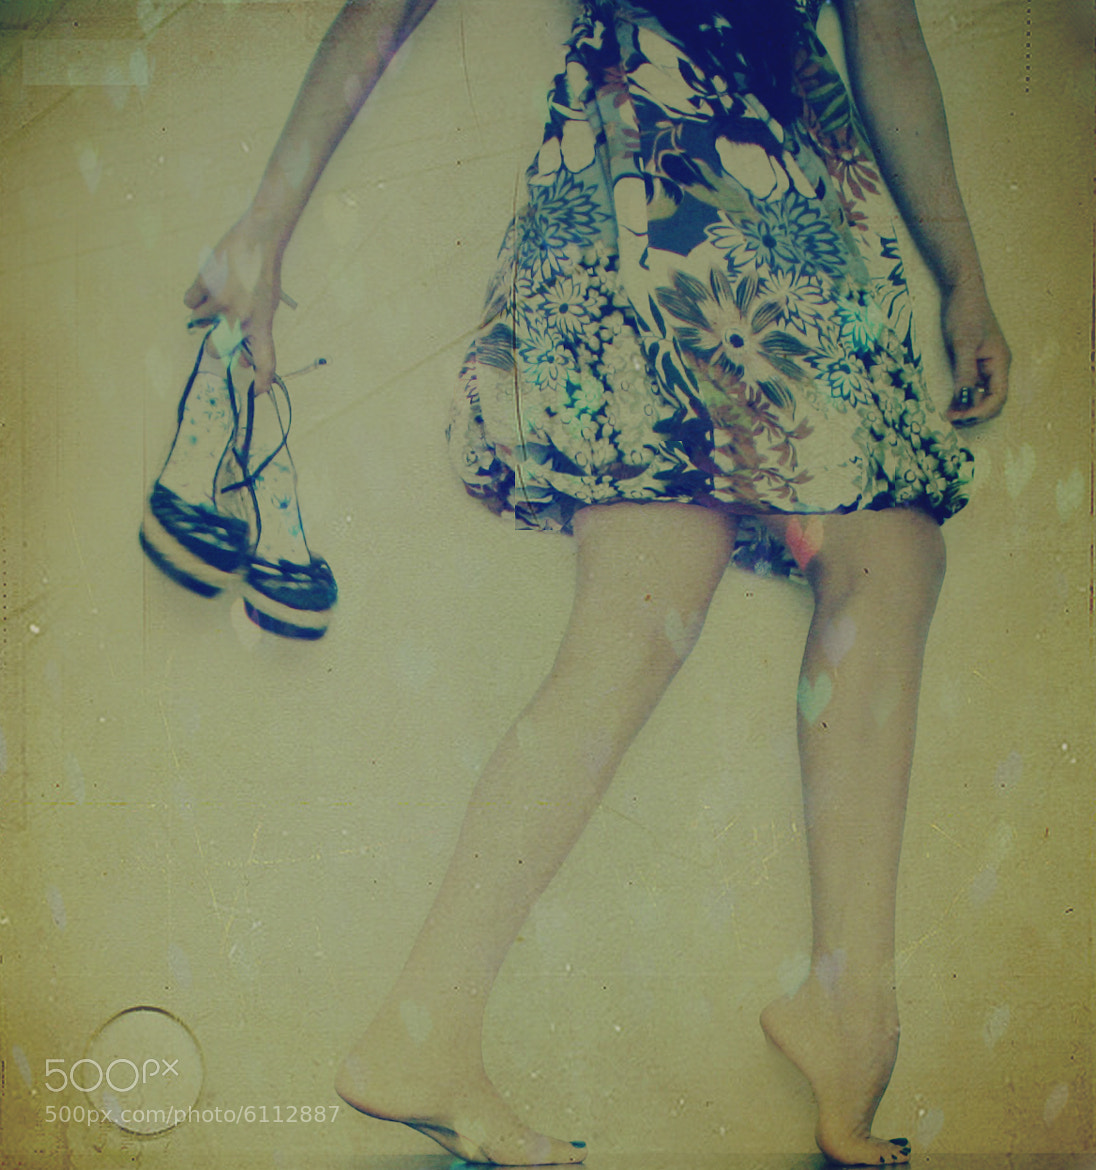 Photograph Walking in my footsteps by Marisa Nourbese on 500px